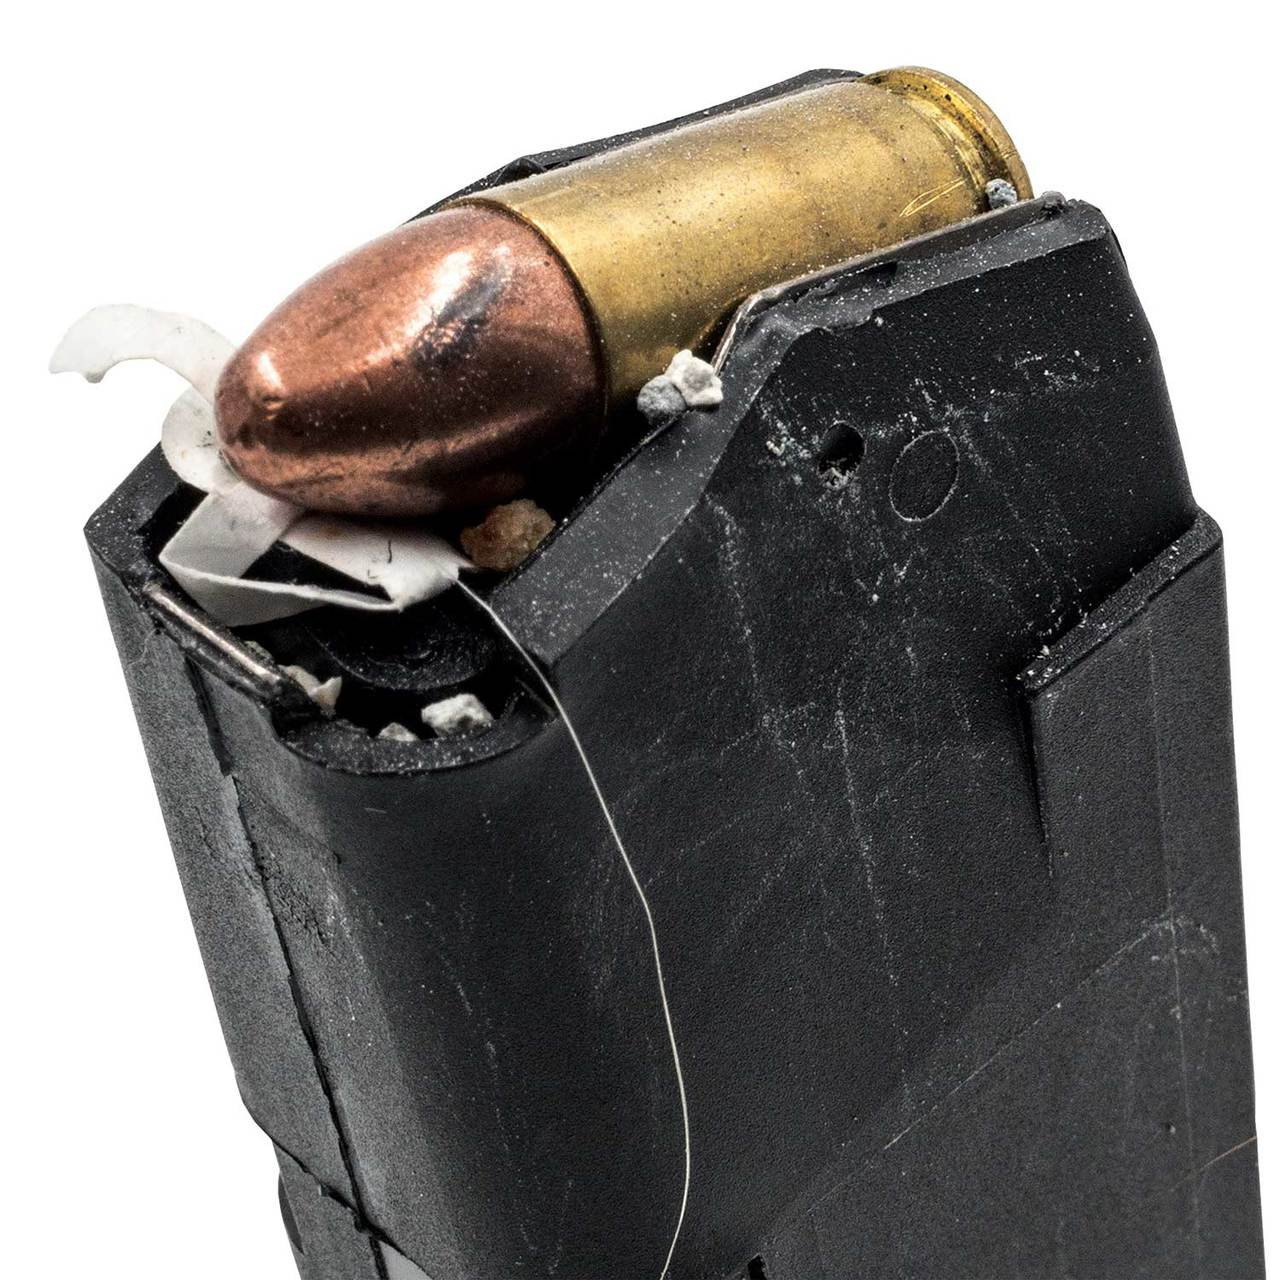 Smith & Wesson Bodyguard 380 Magazine Sleeve